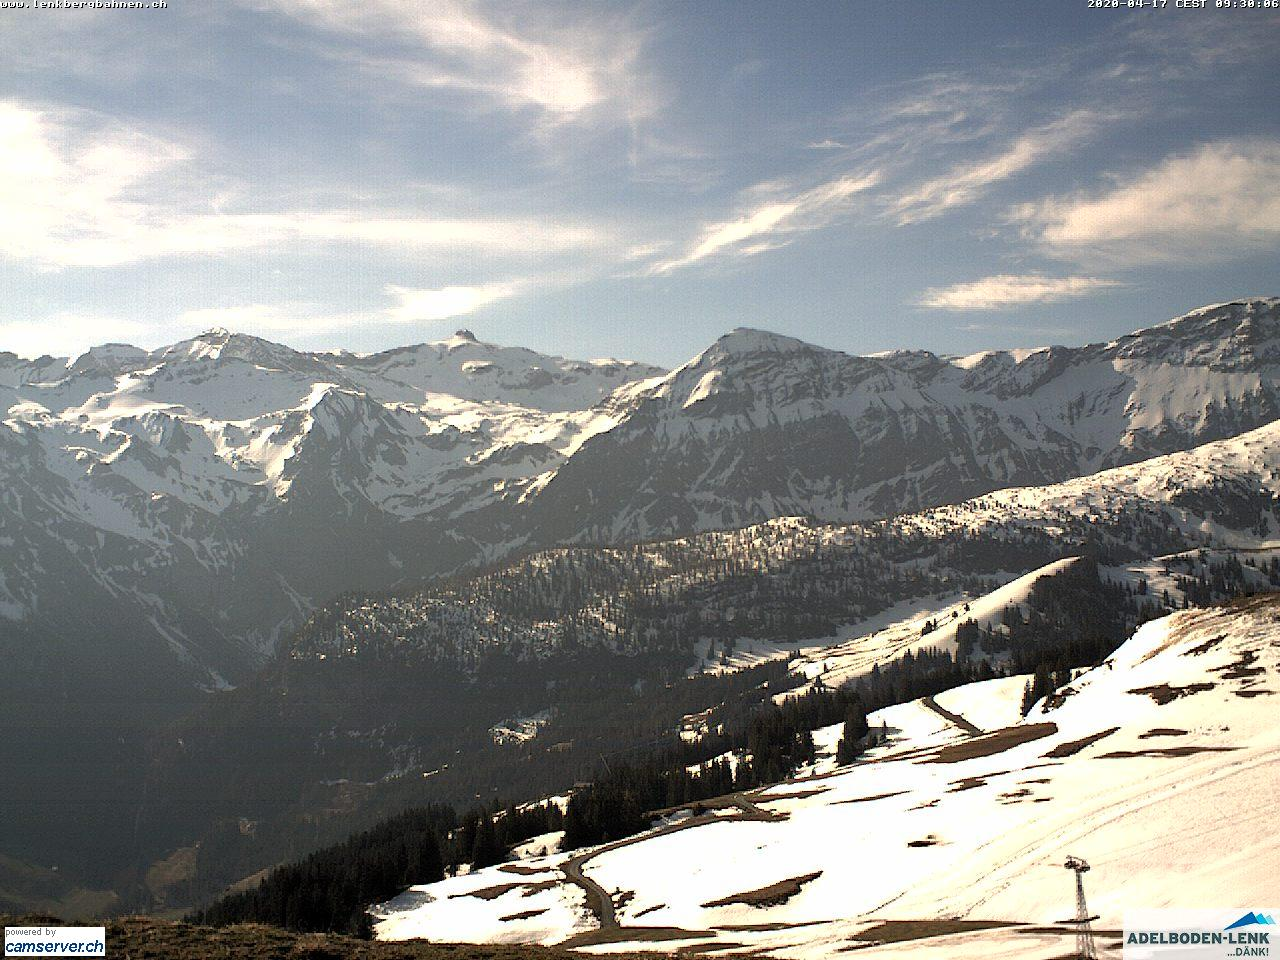 Webcams de Adelboden - Lenk